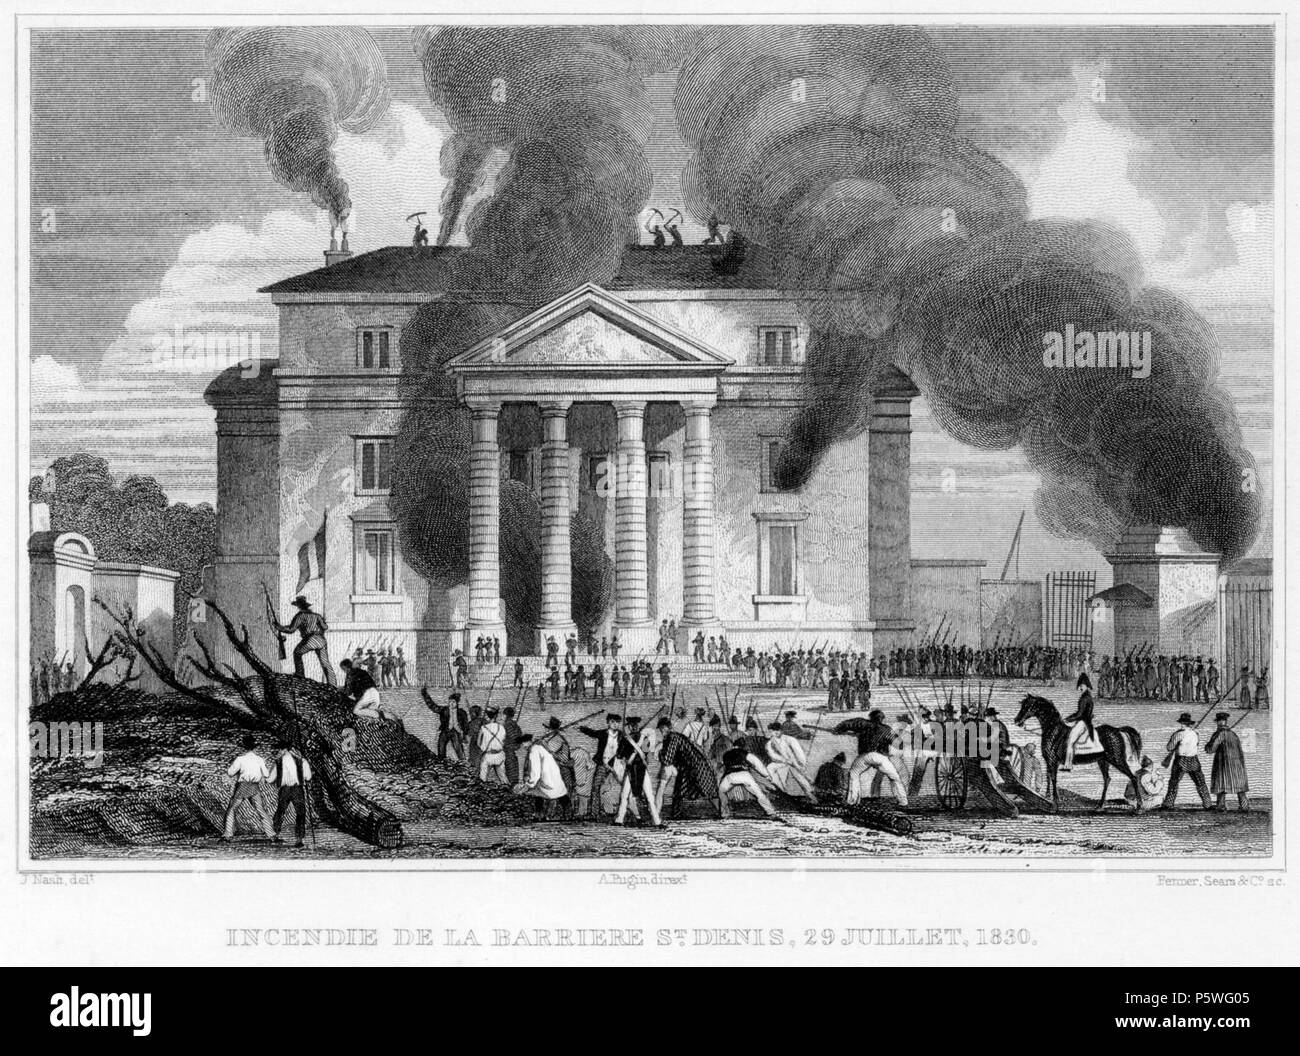 Destruction of barrier of St. Denis: July, 1830 . Catalyzed by the decreasing popularity of Charles X and the continual economic hardships of the working class, the July Revolution of 1830 ended the Bourbon monarchy and brought Louis-Philippe to the throne. The first day of violence occurred on July 27th, following the publication of the king's controversial ordinances banning freedom of the press. Protesters violently rioted throughout Paris, and the French government was forced to set up various barricades, but to little avail. By July 29th, the third and final day of fighting, the throne of Stock Photo